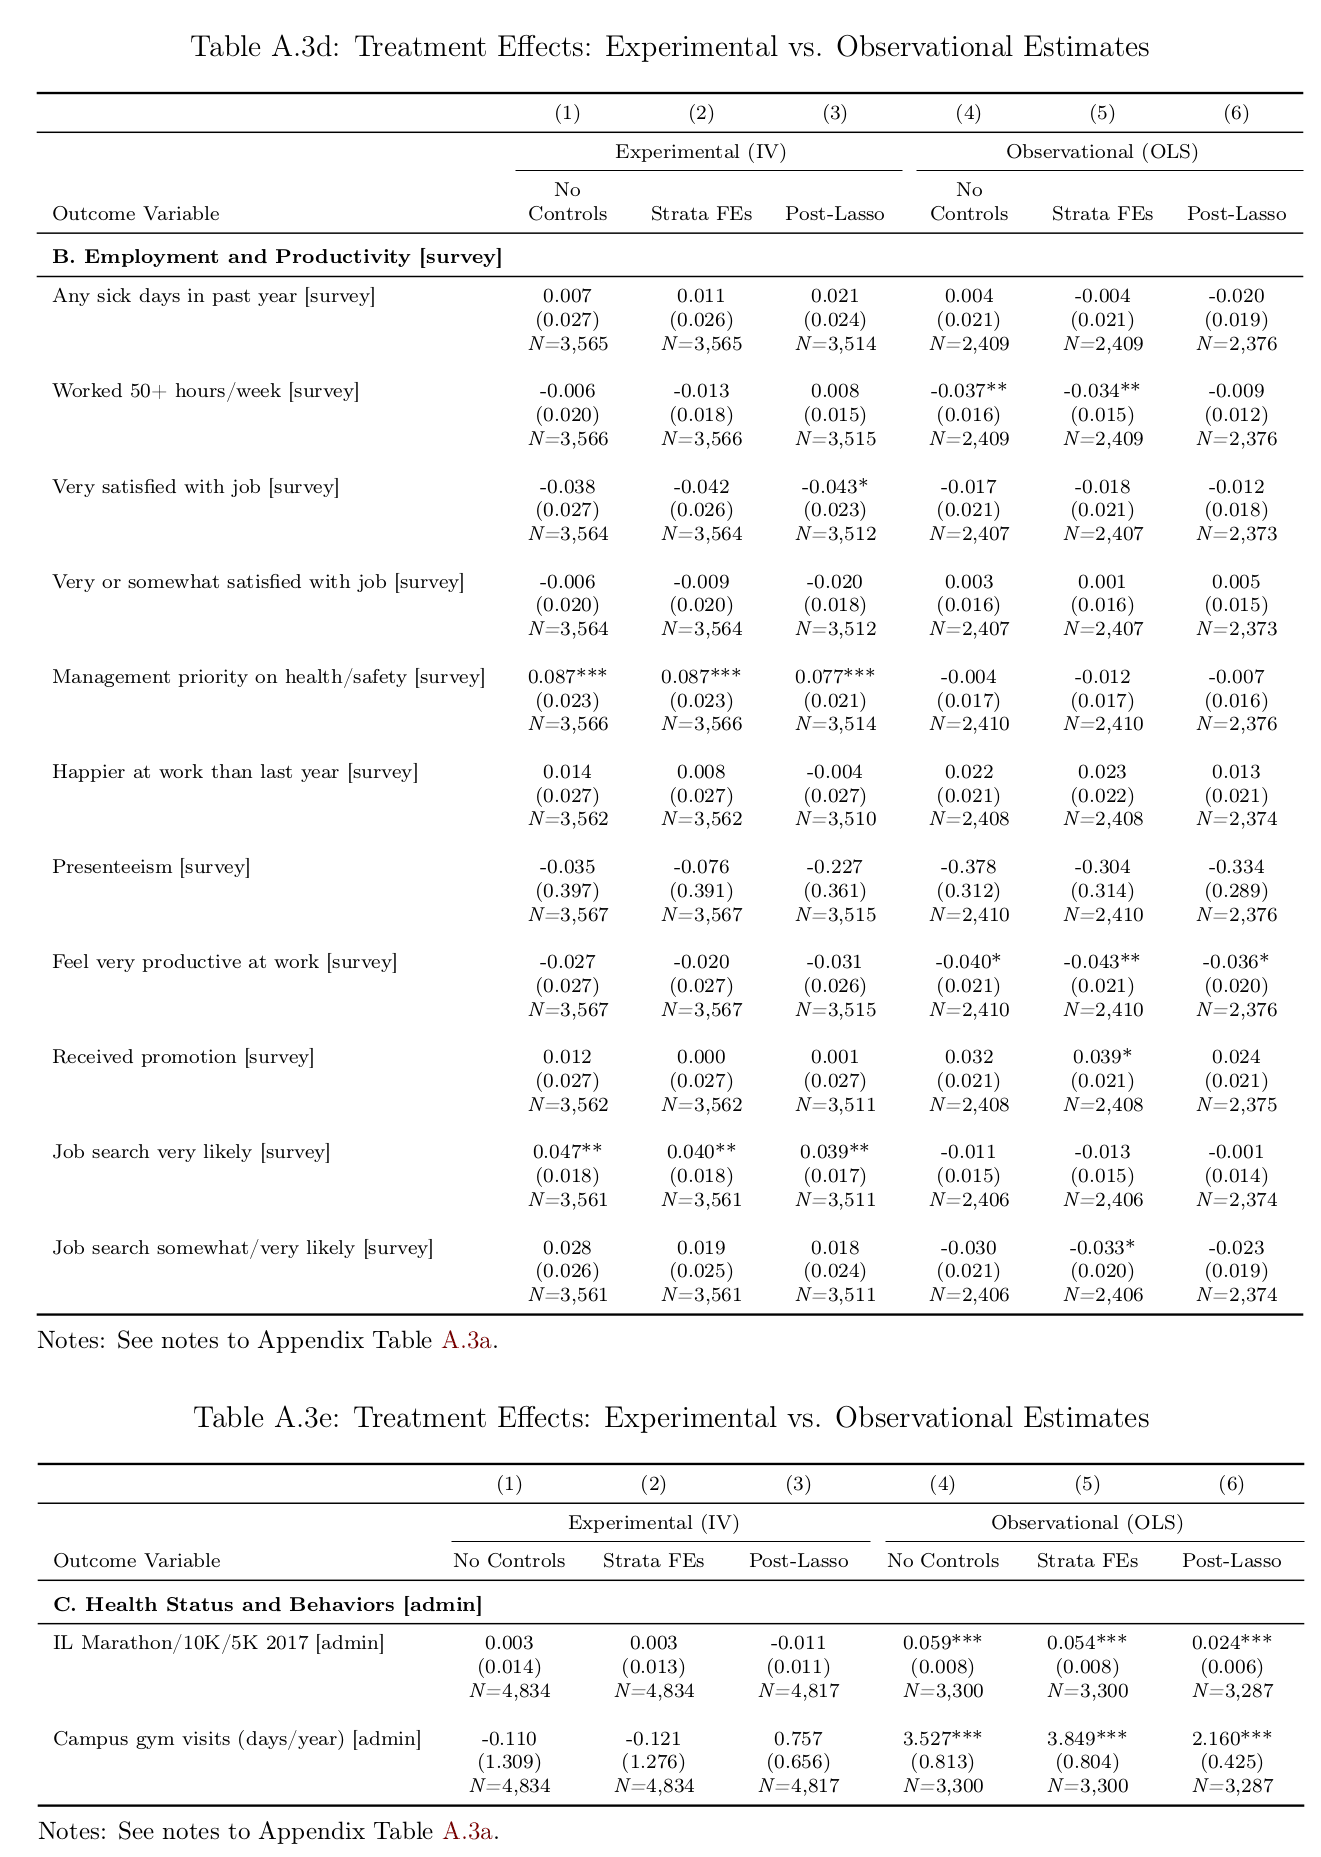 Jones et al 2018 appendix: Table A3, d-e, all randomized vs correlational estimates